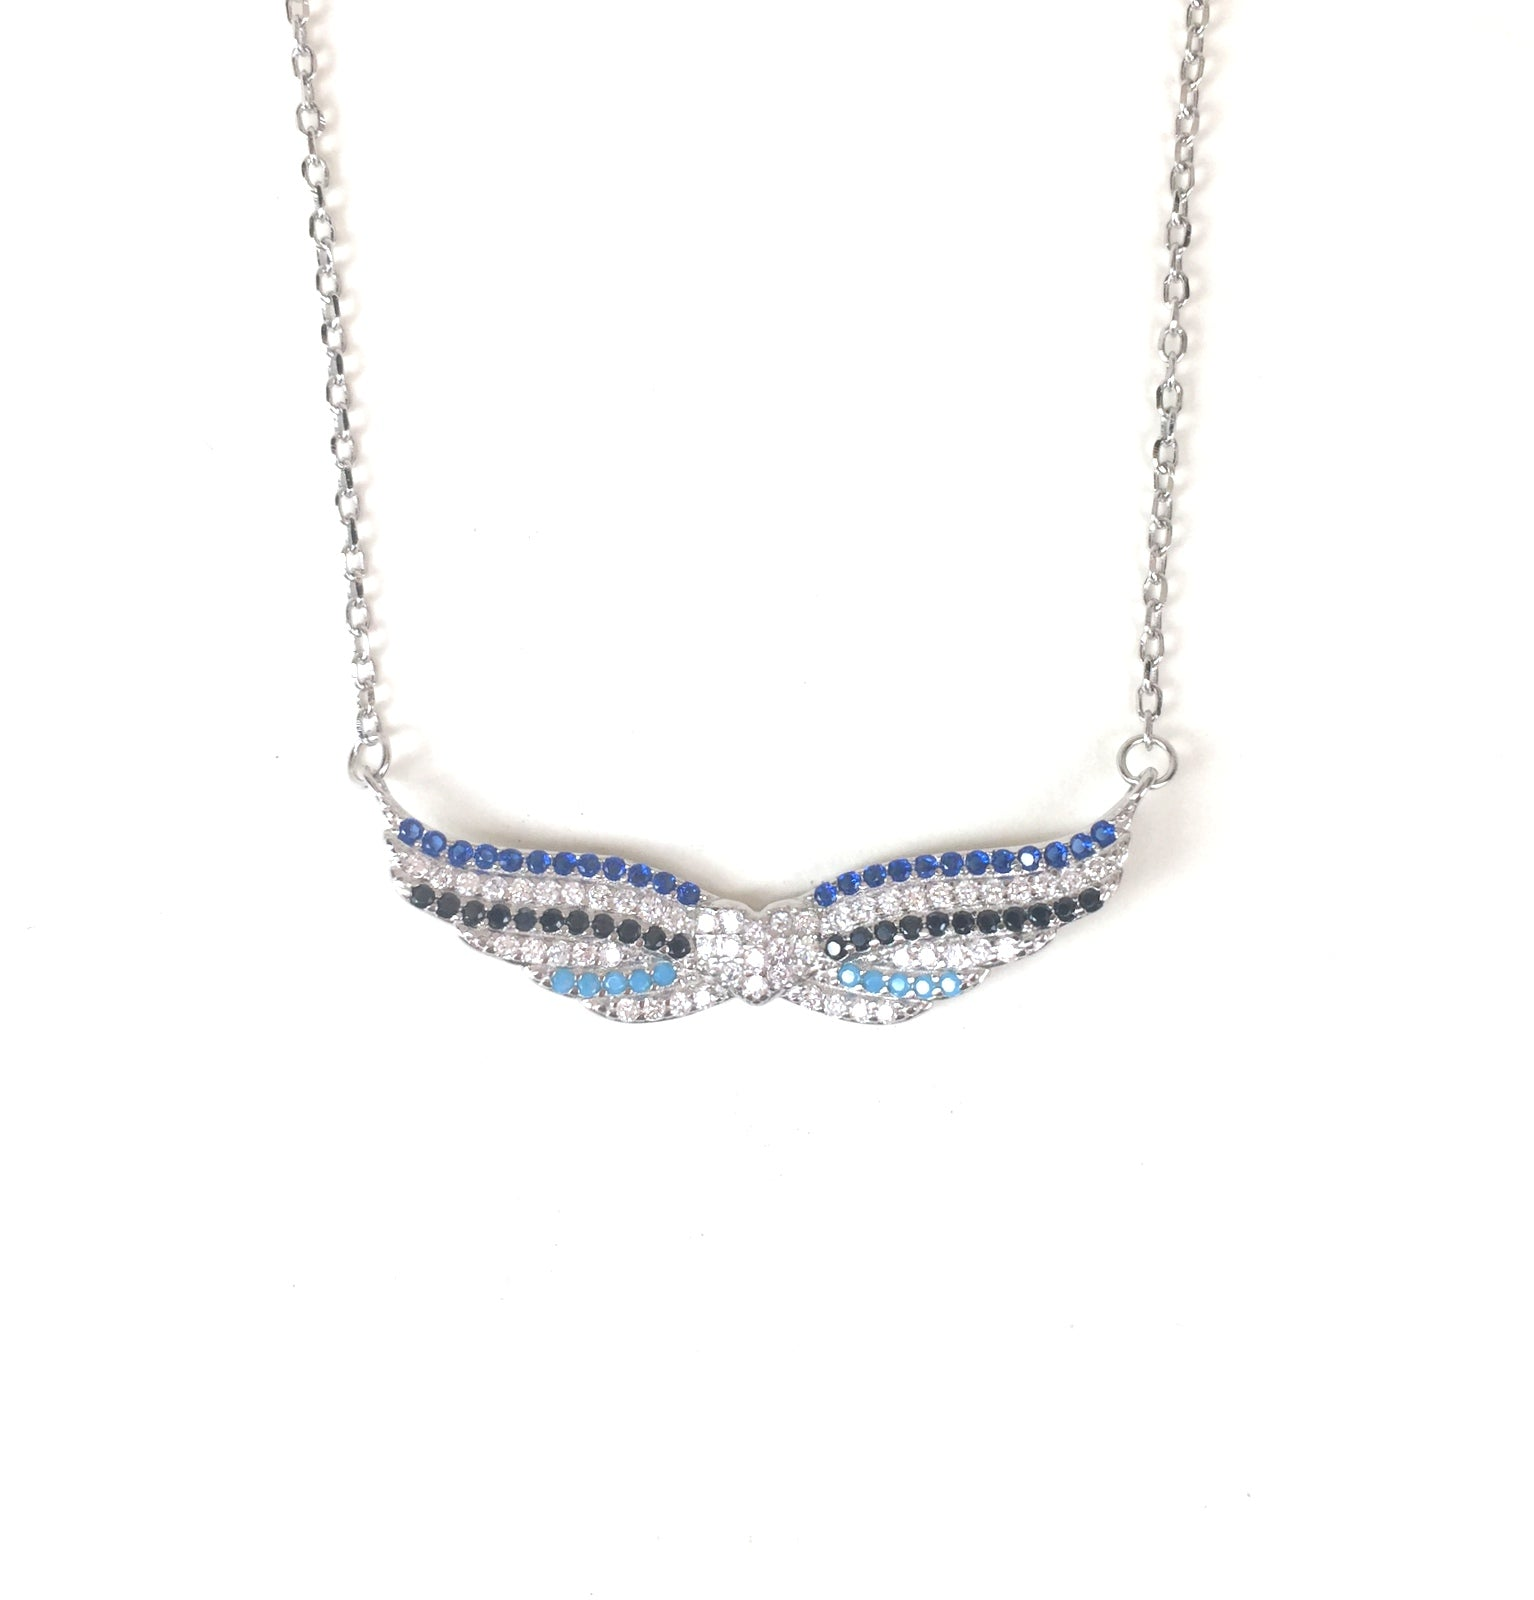 WINGS WITH HEART PAVE CZ STERLING SILVER NECKLACE